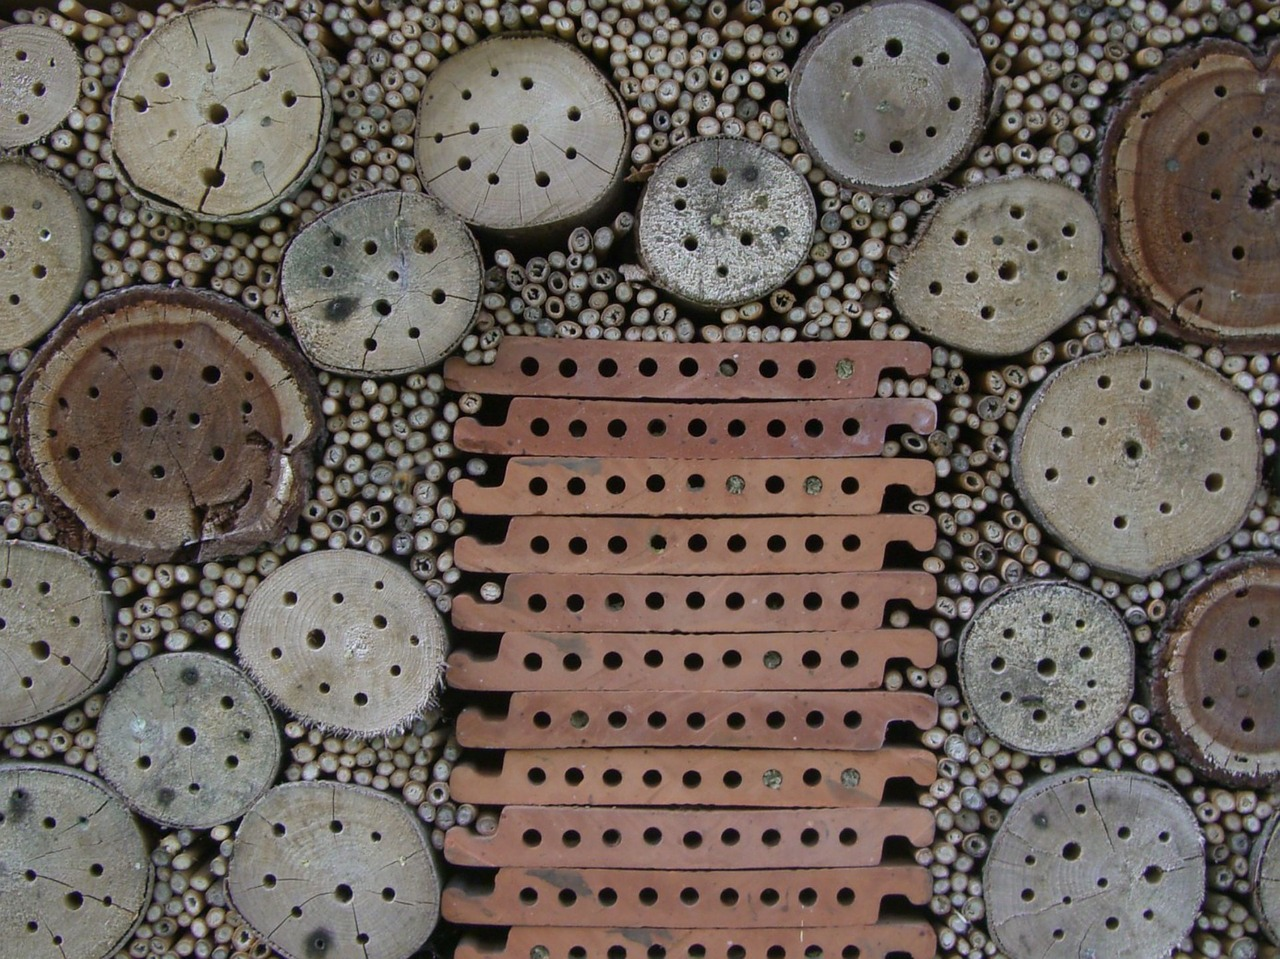 insect-hotel-341274_1280